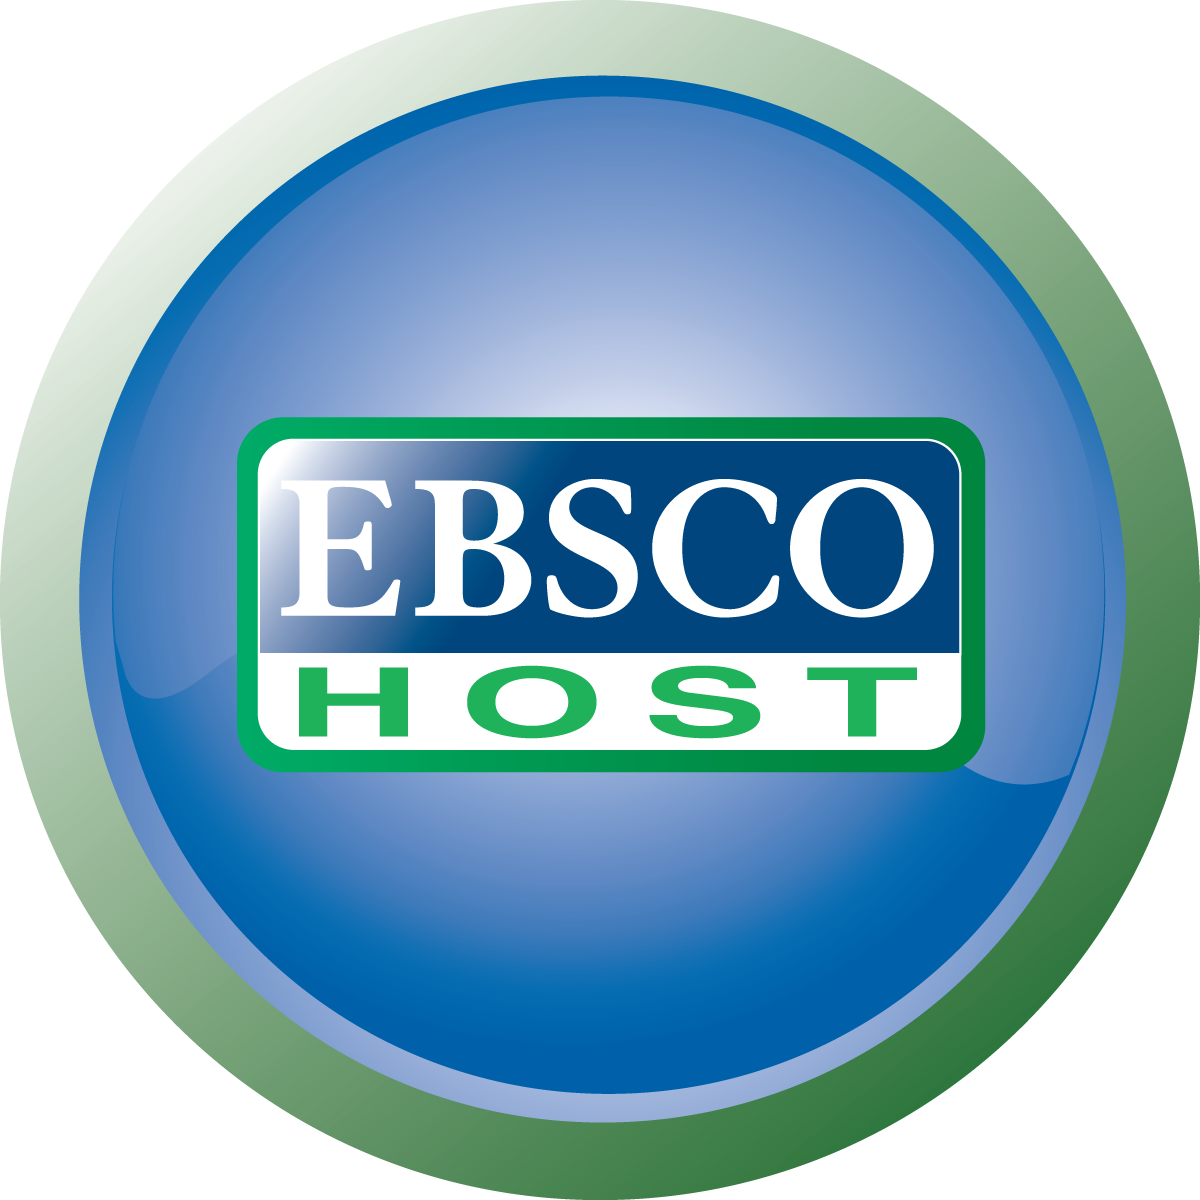 ebsco paper 2 Ebscohost research papers - experienced writers, quality services, timely delivery and other benefits can be found in our custom writing service put out a little time.